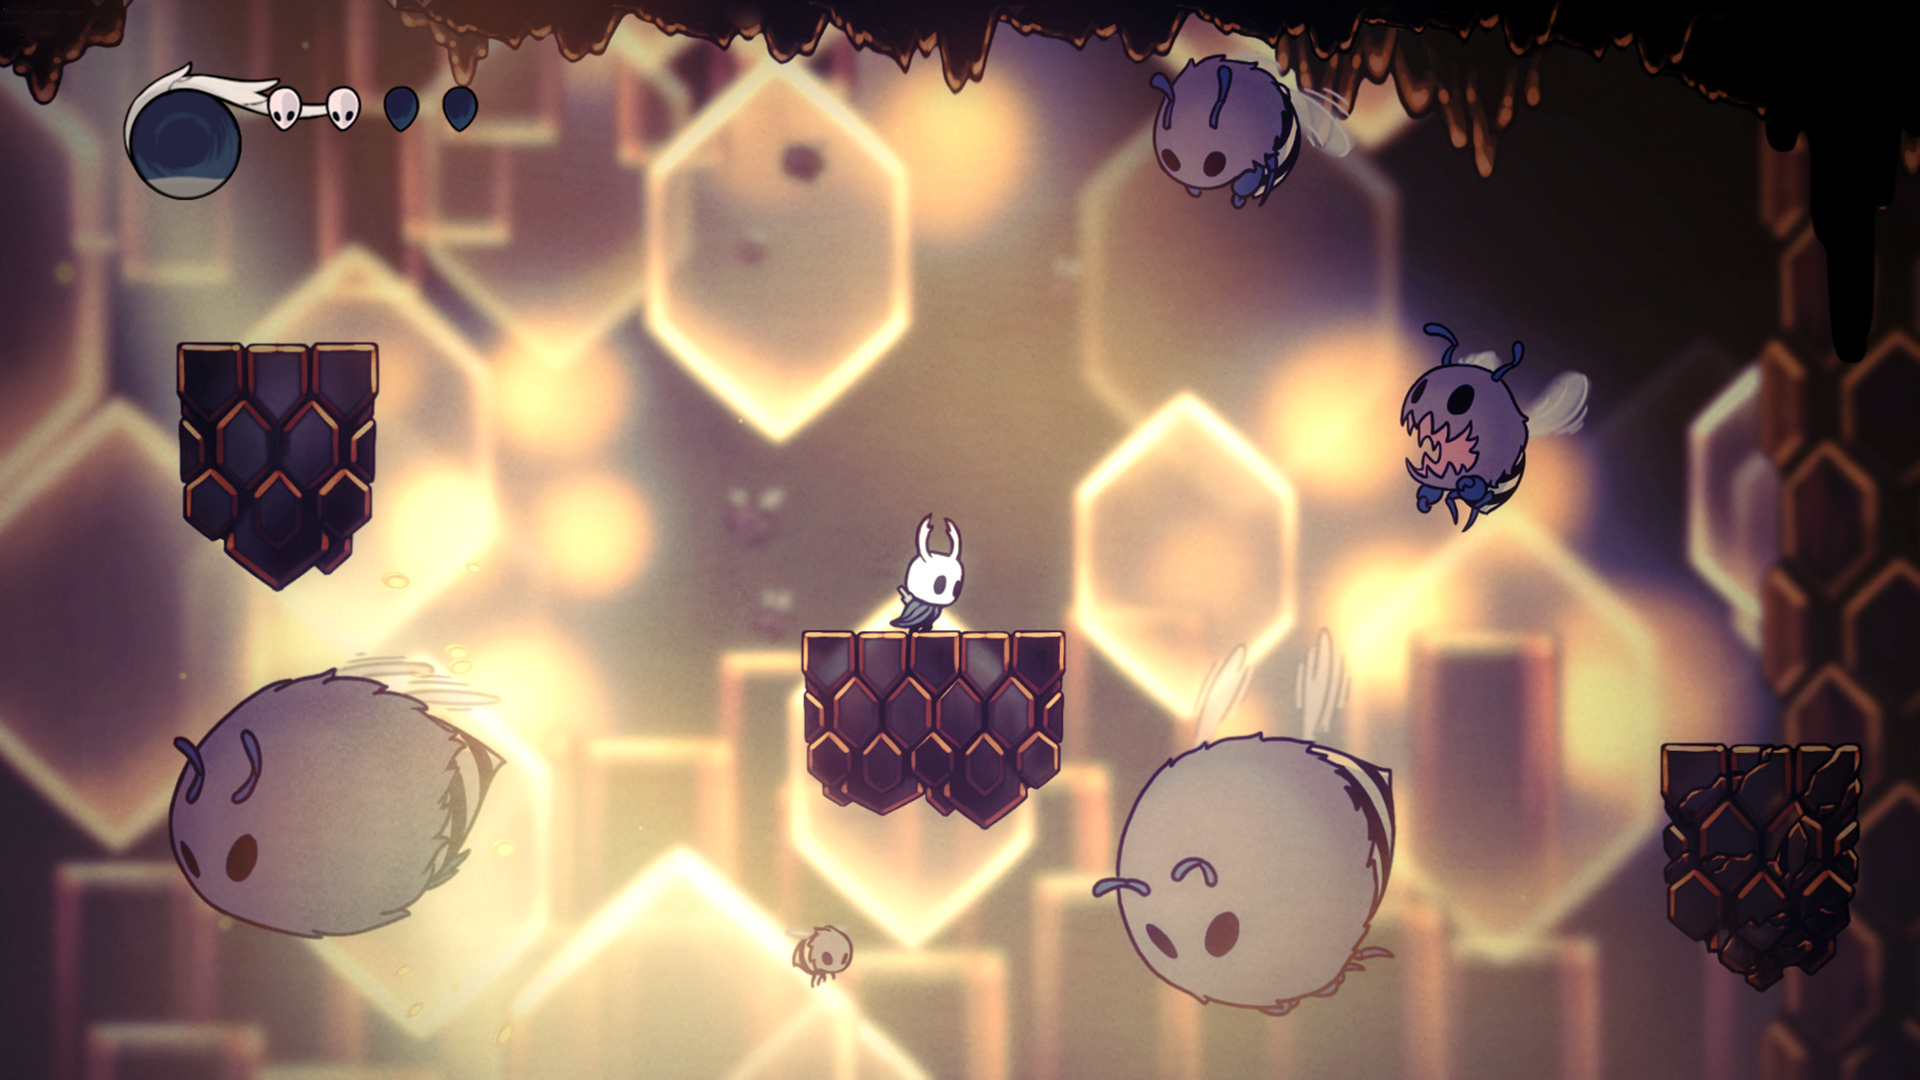 Hollow Knight (PC) - it'd bee a shame to miss it